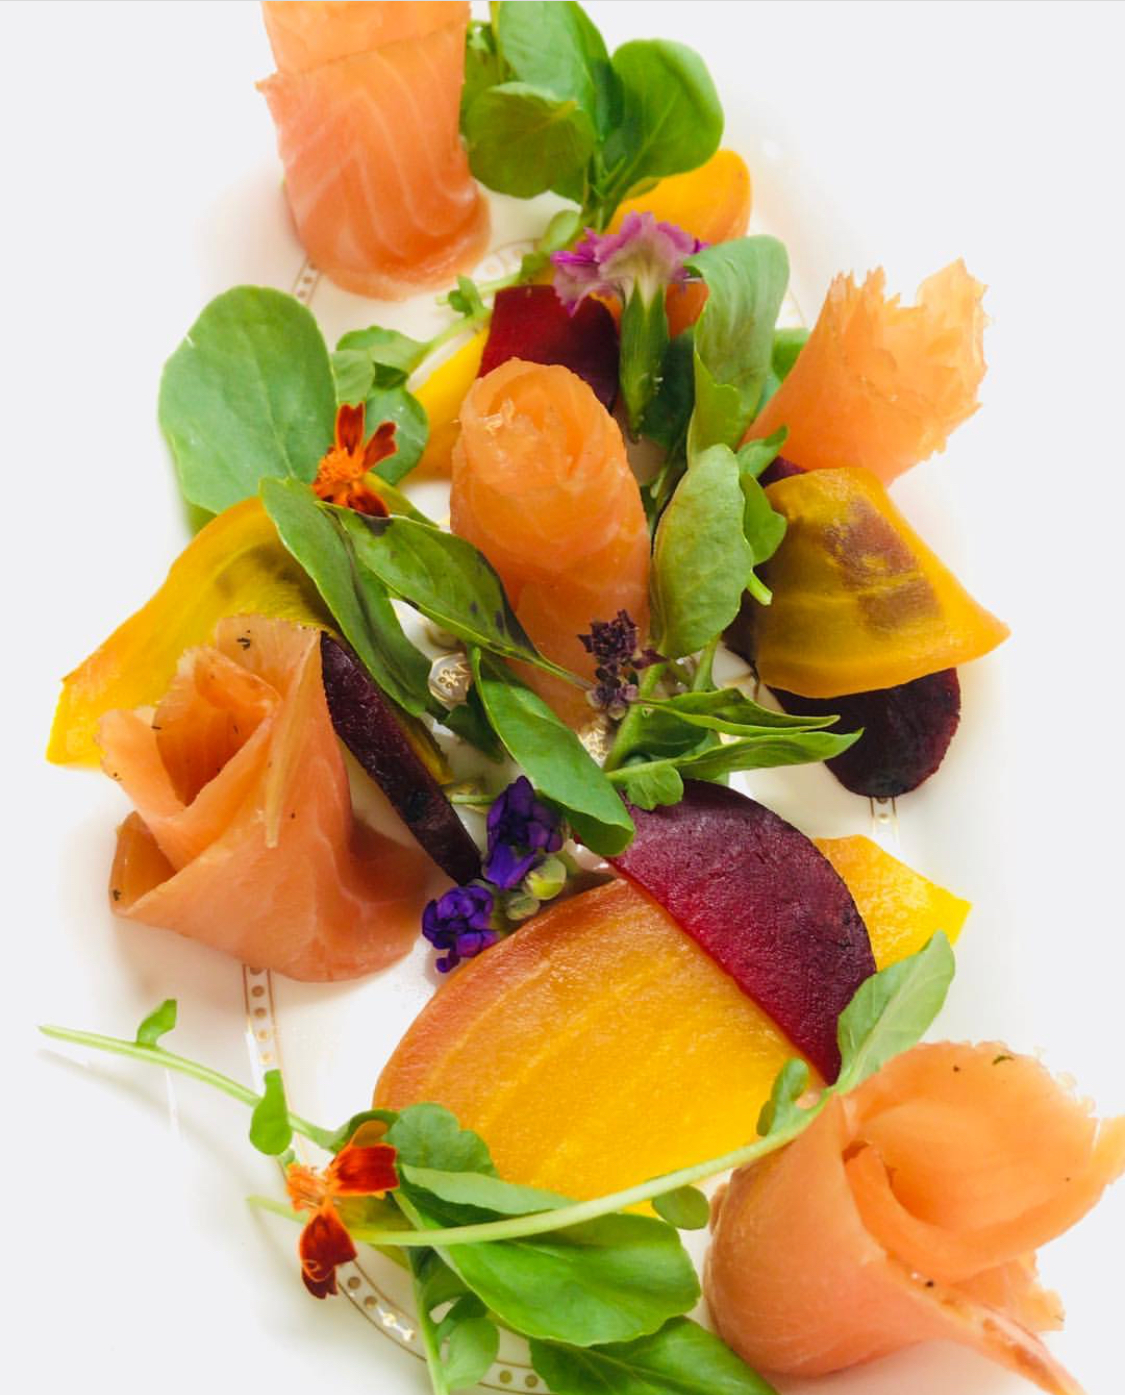 Smoked Salmon & Beet Salad